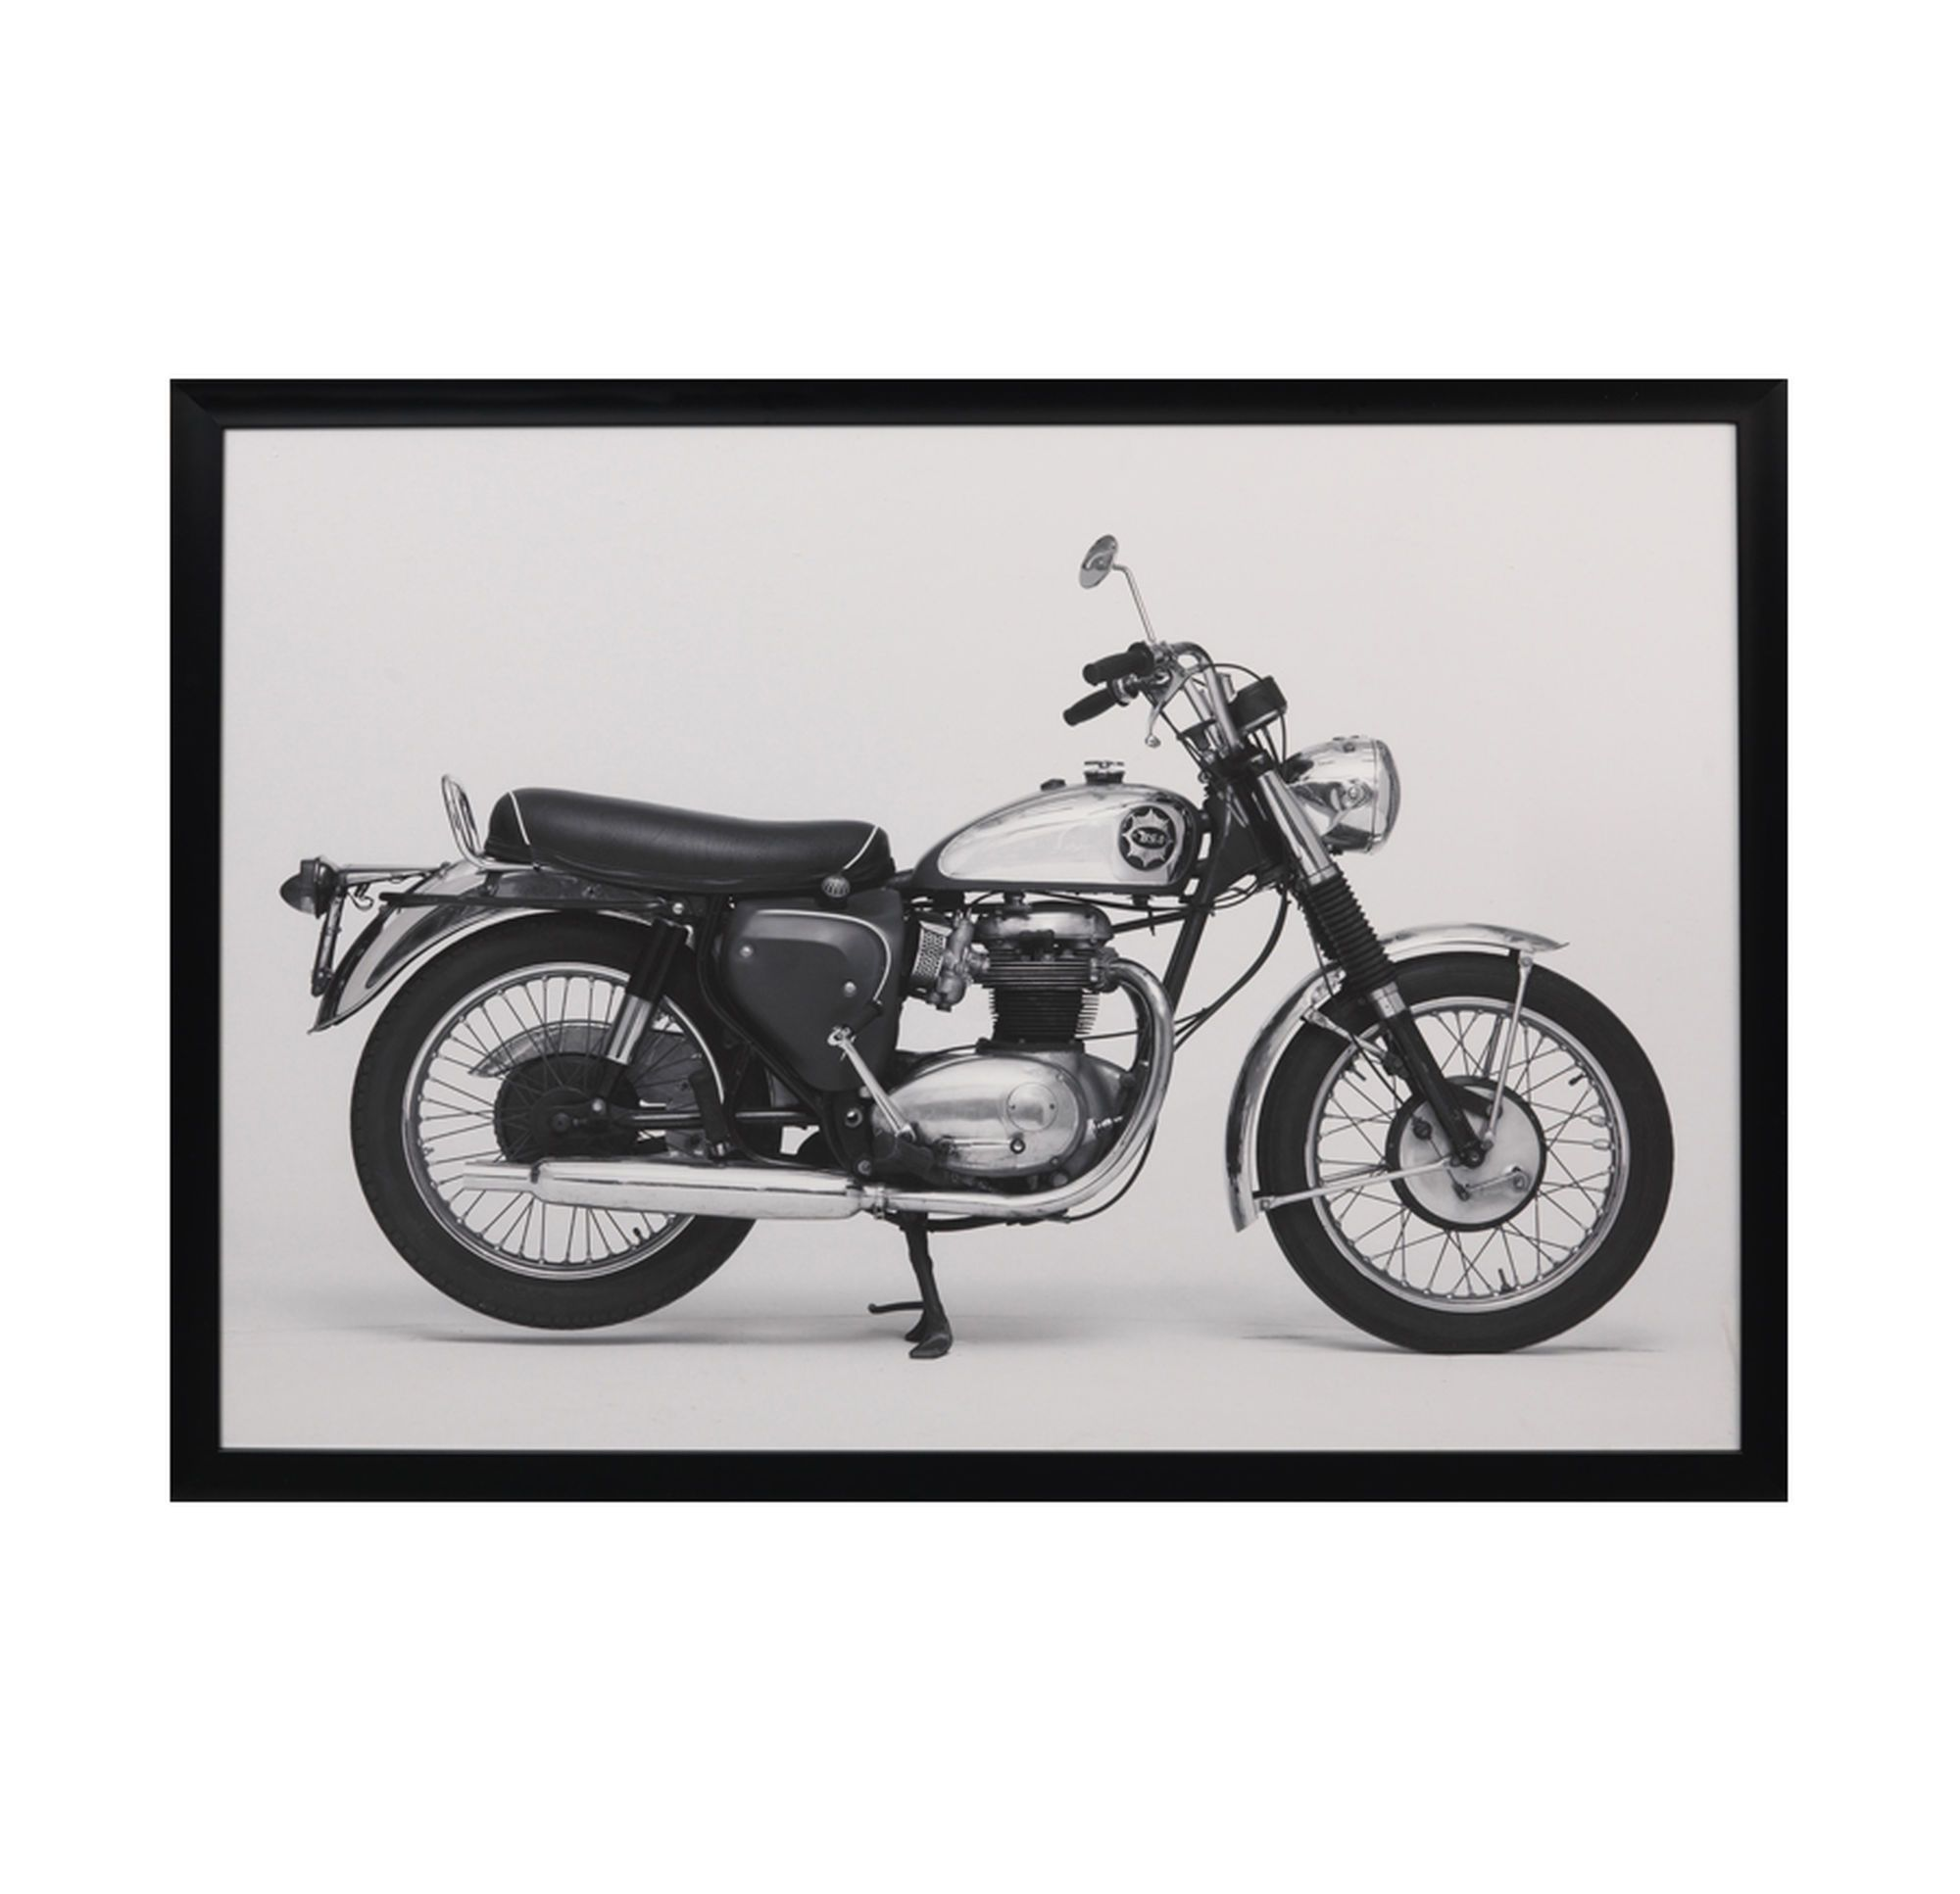 Superbe Shop Our BSA MOTORCYCLE WALL ART. Make A Bold Style Statement With This  Versatile Signature Home Accent. Make Your Walls A Work Of Art!